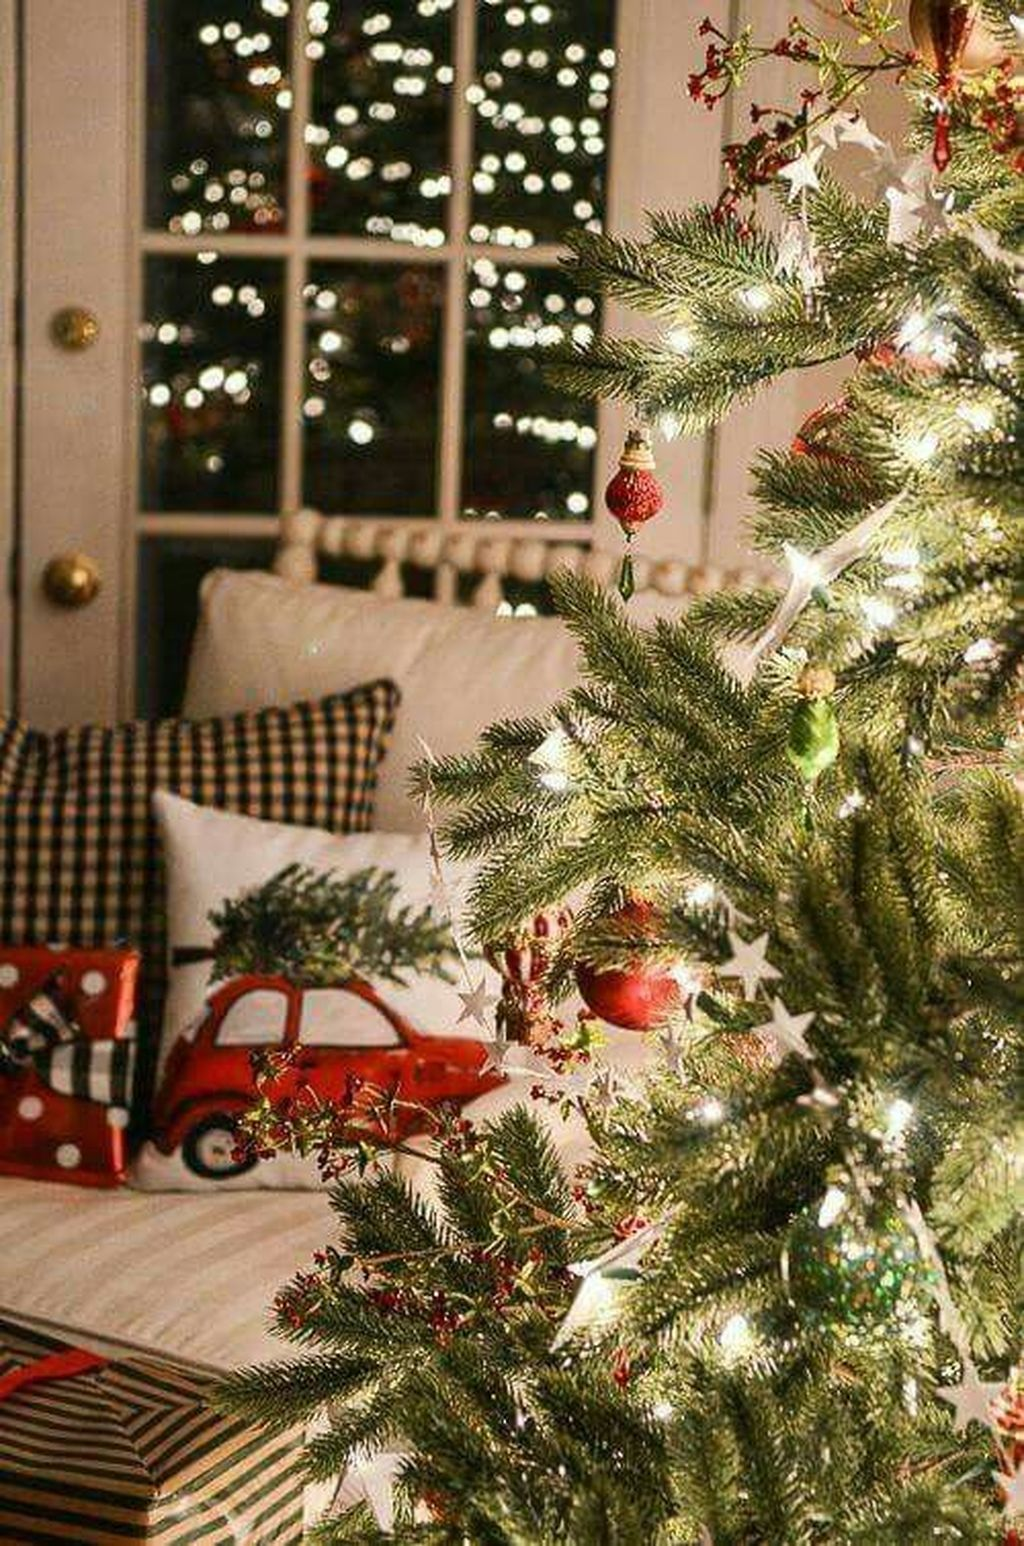 Amazing Christmas Lights Tree Decoration Ideas 33